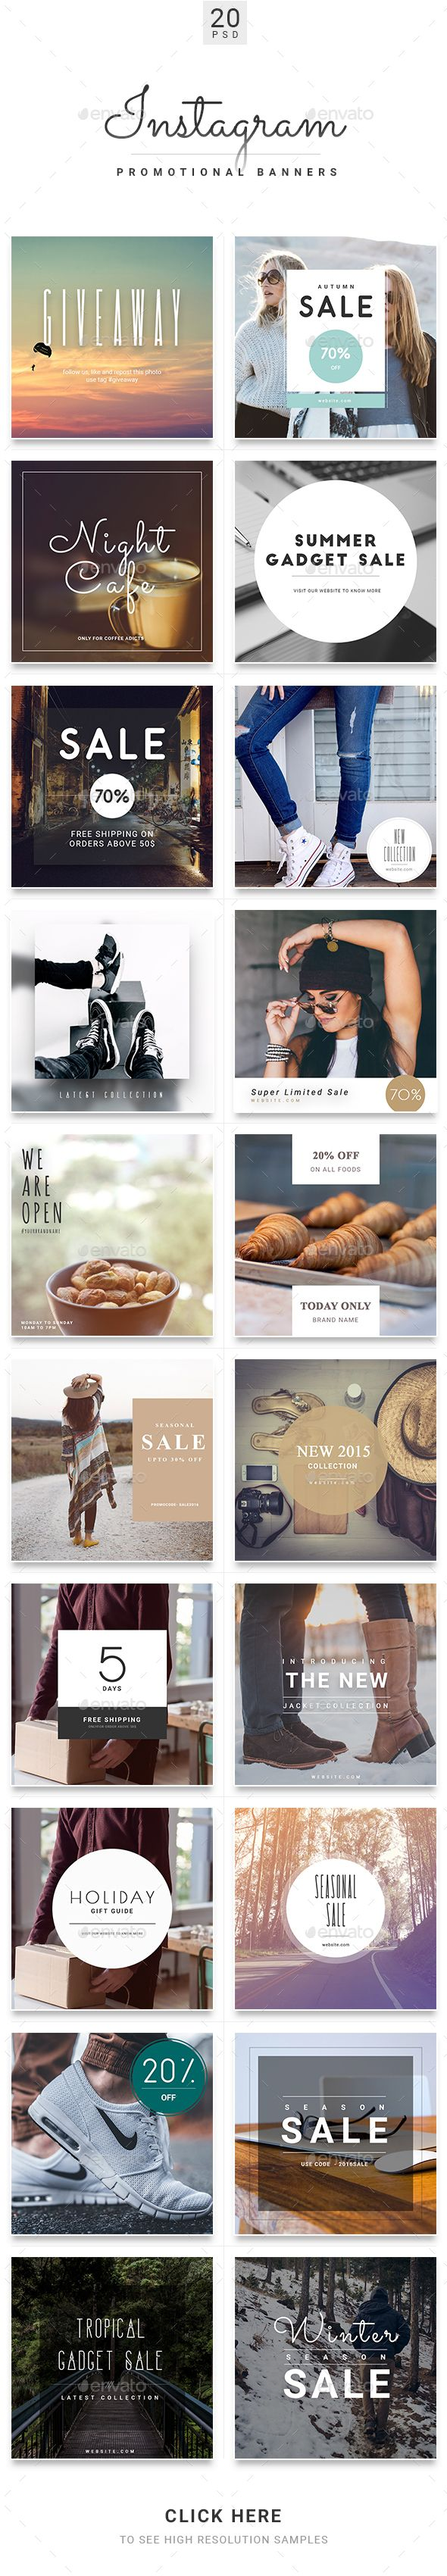 Instagram Promotional Banner Templates - Banners & Ads Web Elements